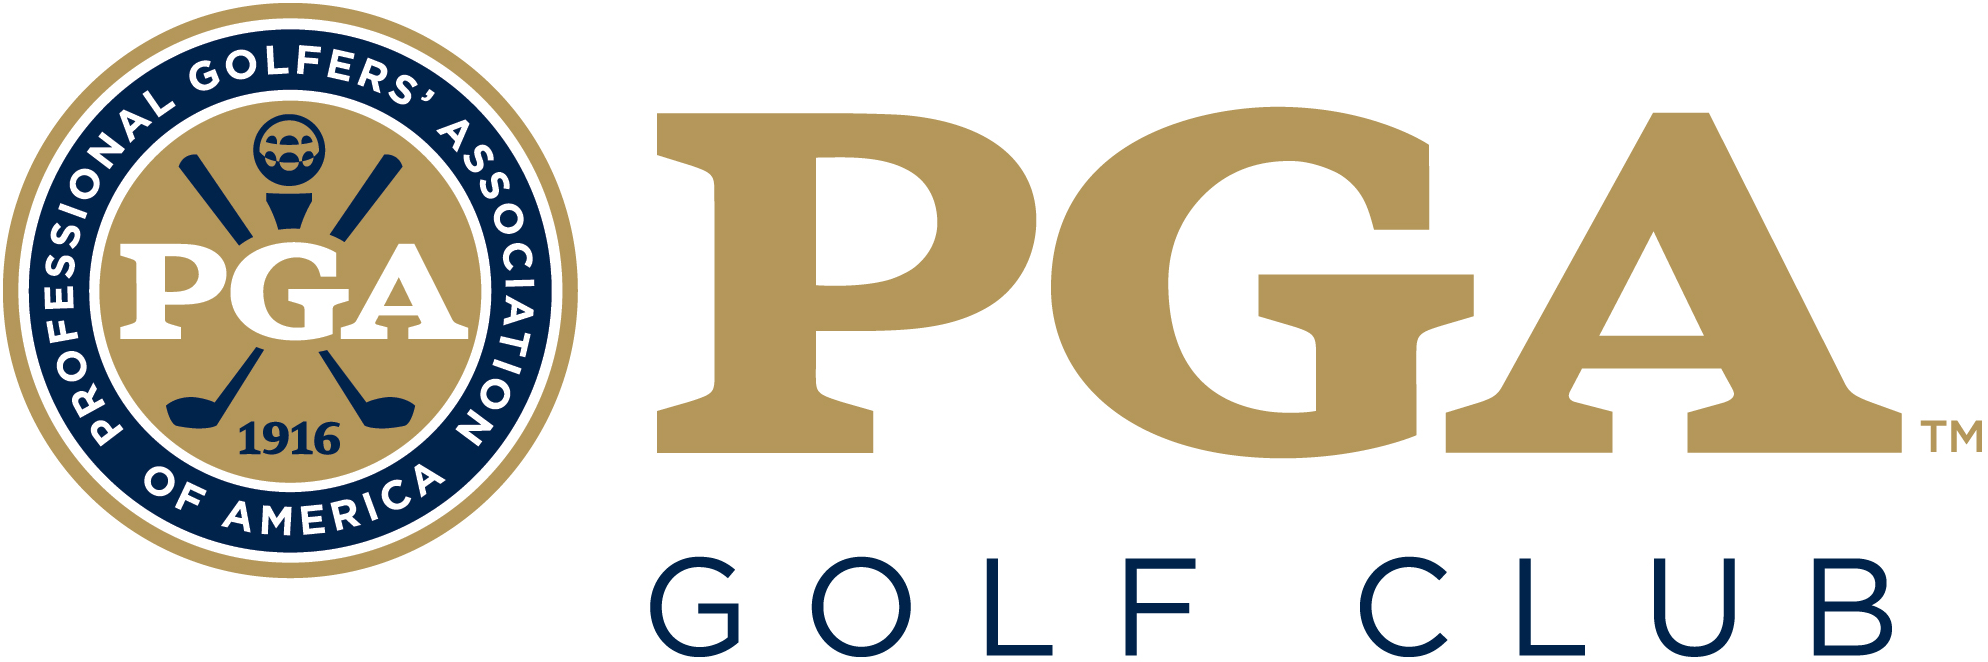 Adults - PGA | Center for Golf Learning & Performance